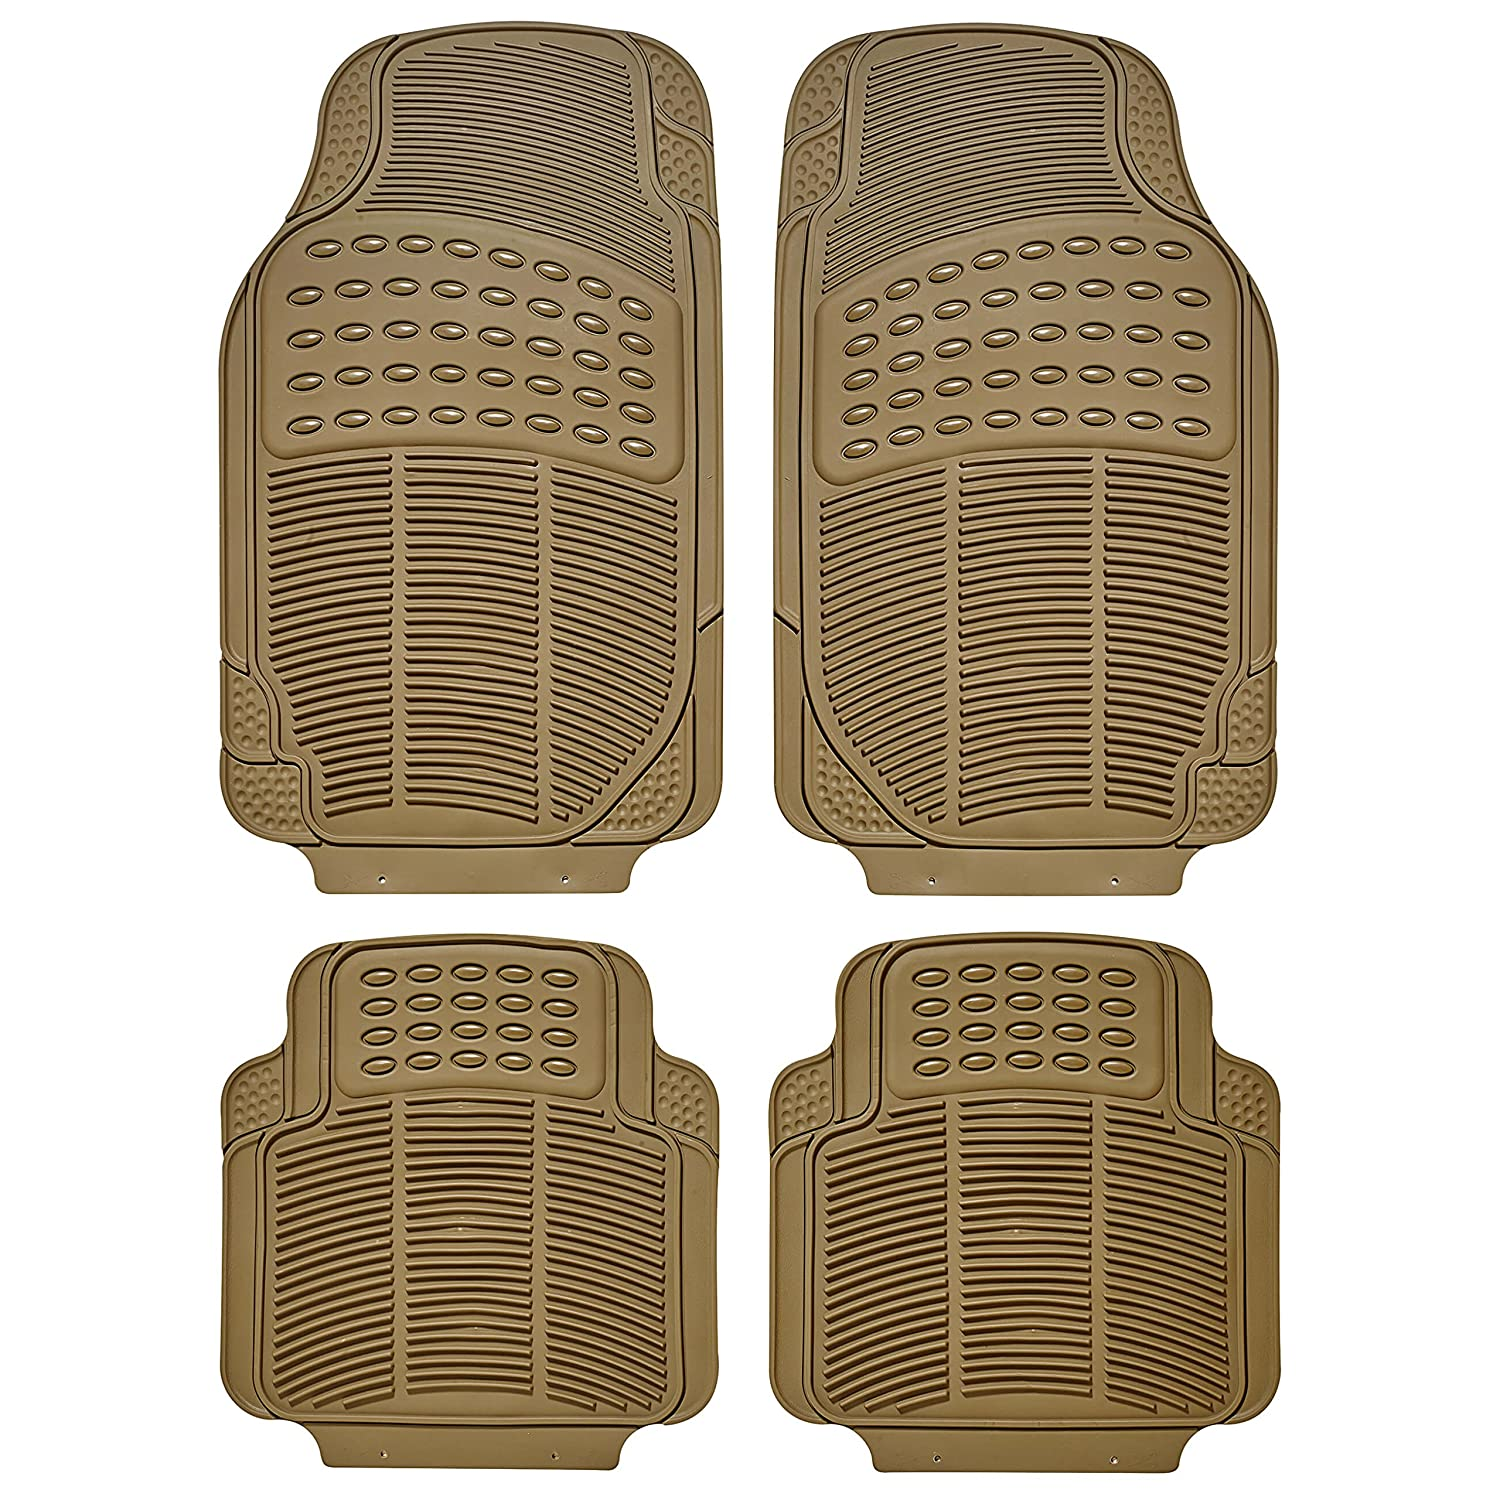 Sumex CONTI10 Universal Continental Rubber Car Mats - Beige